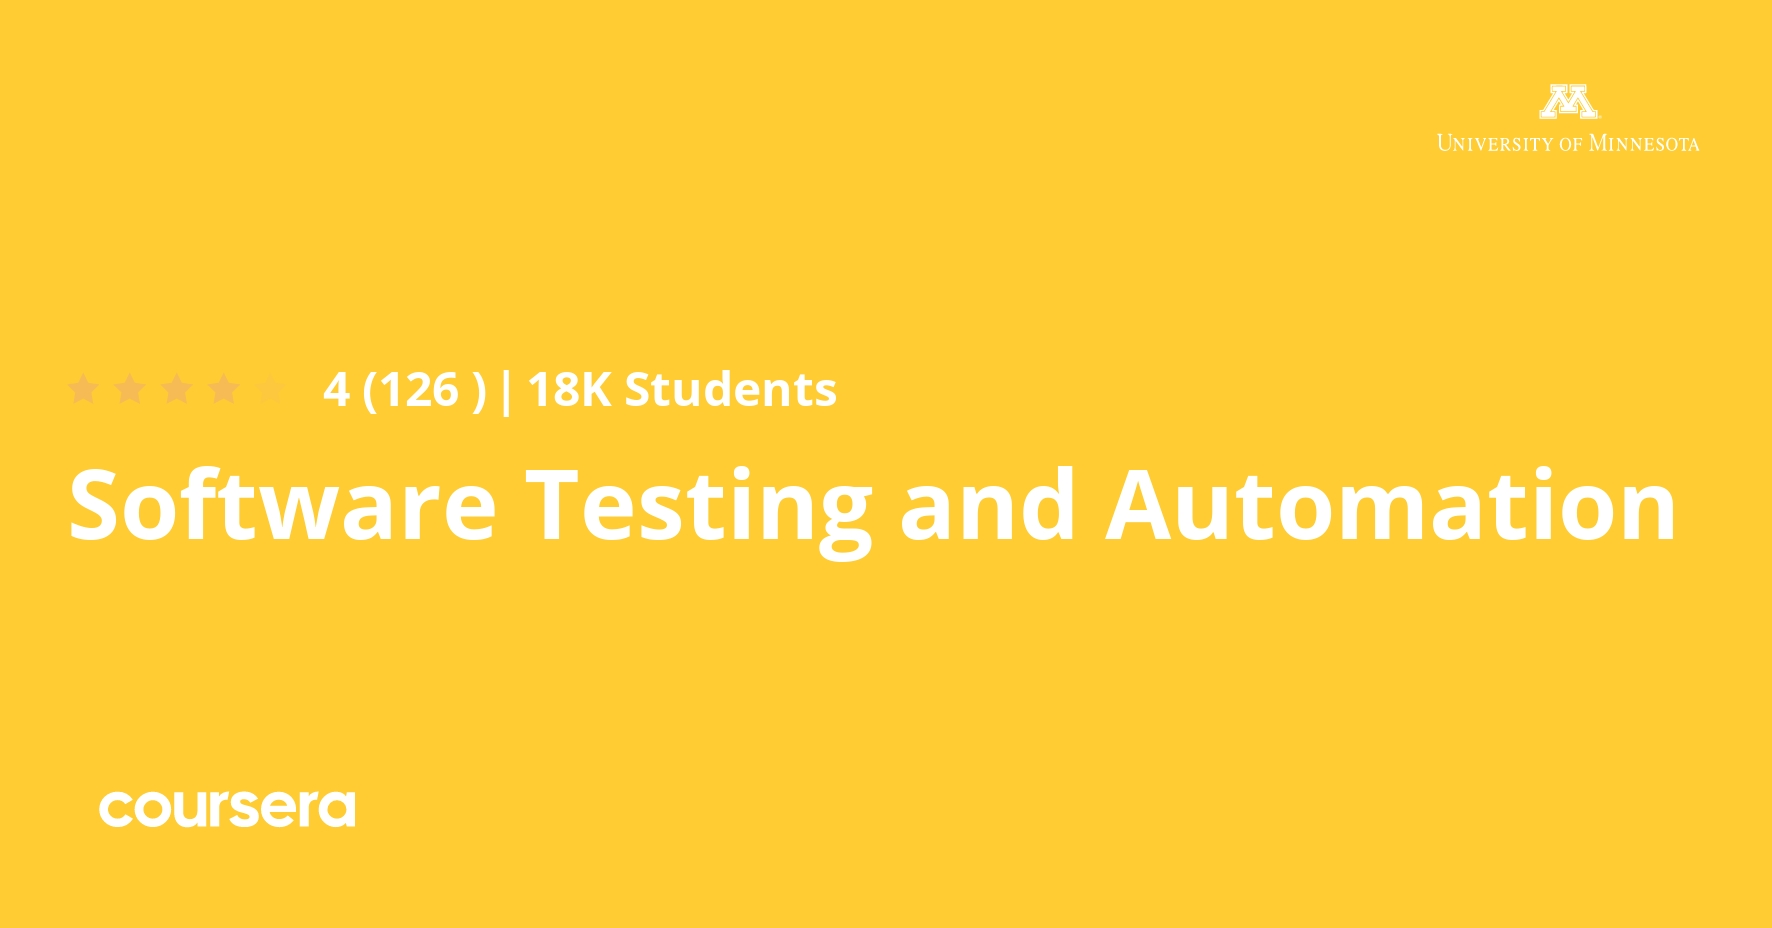 Software Testing and Automation Specialization